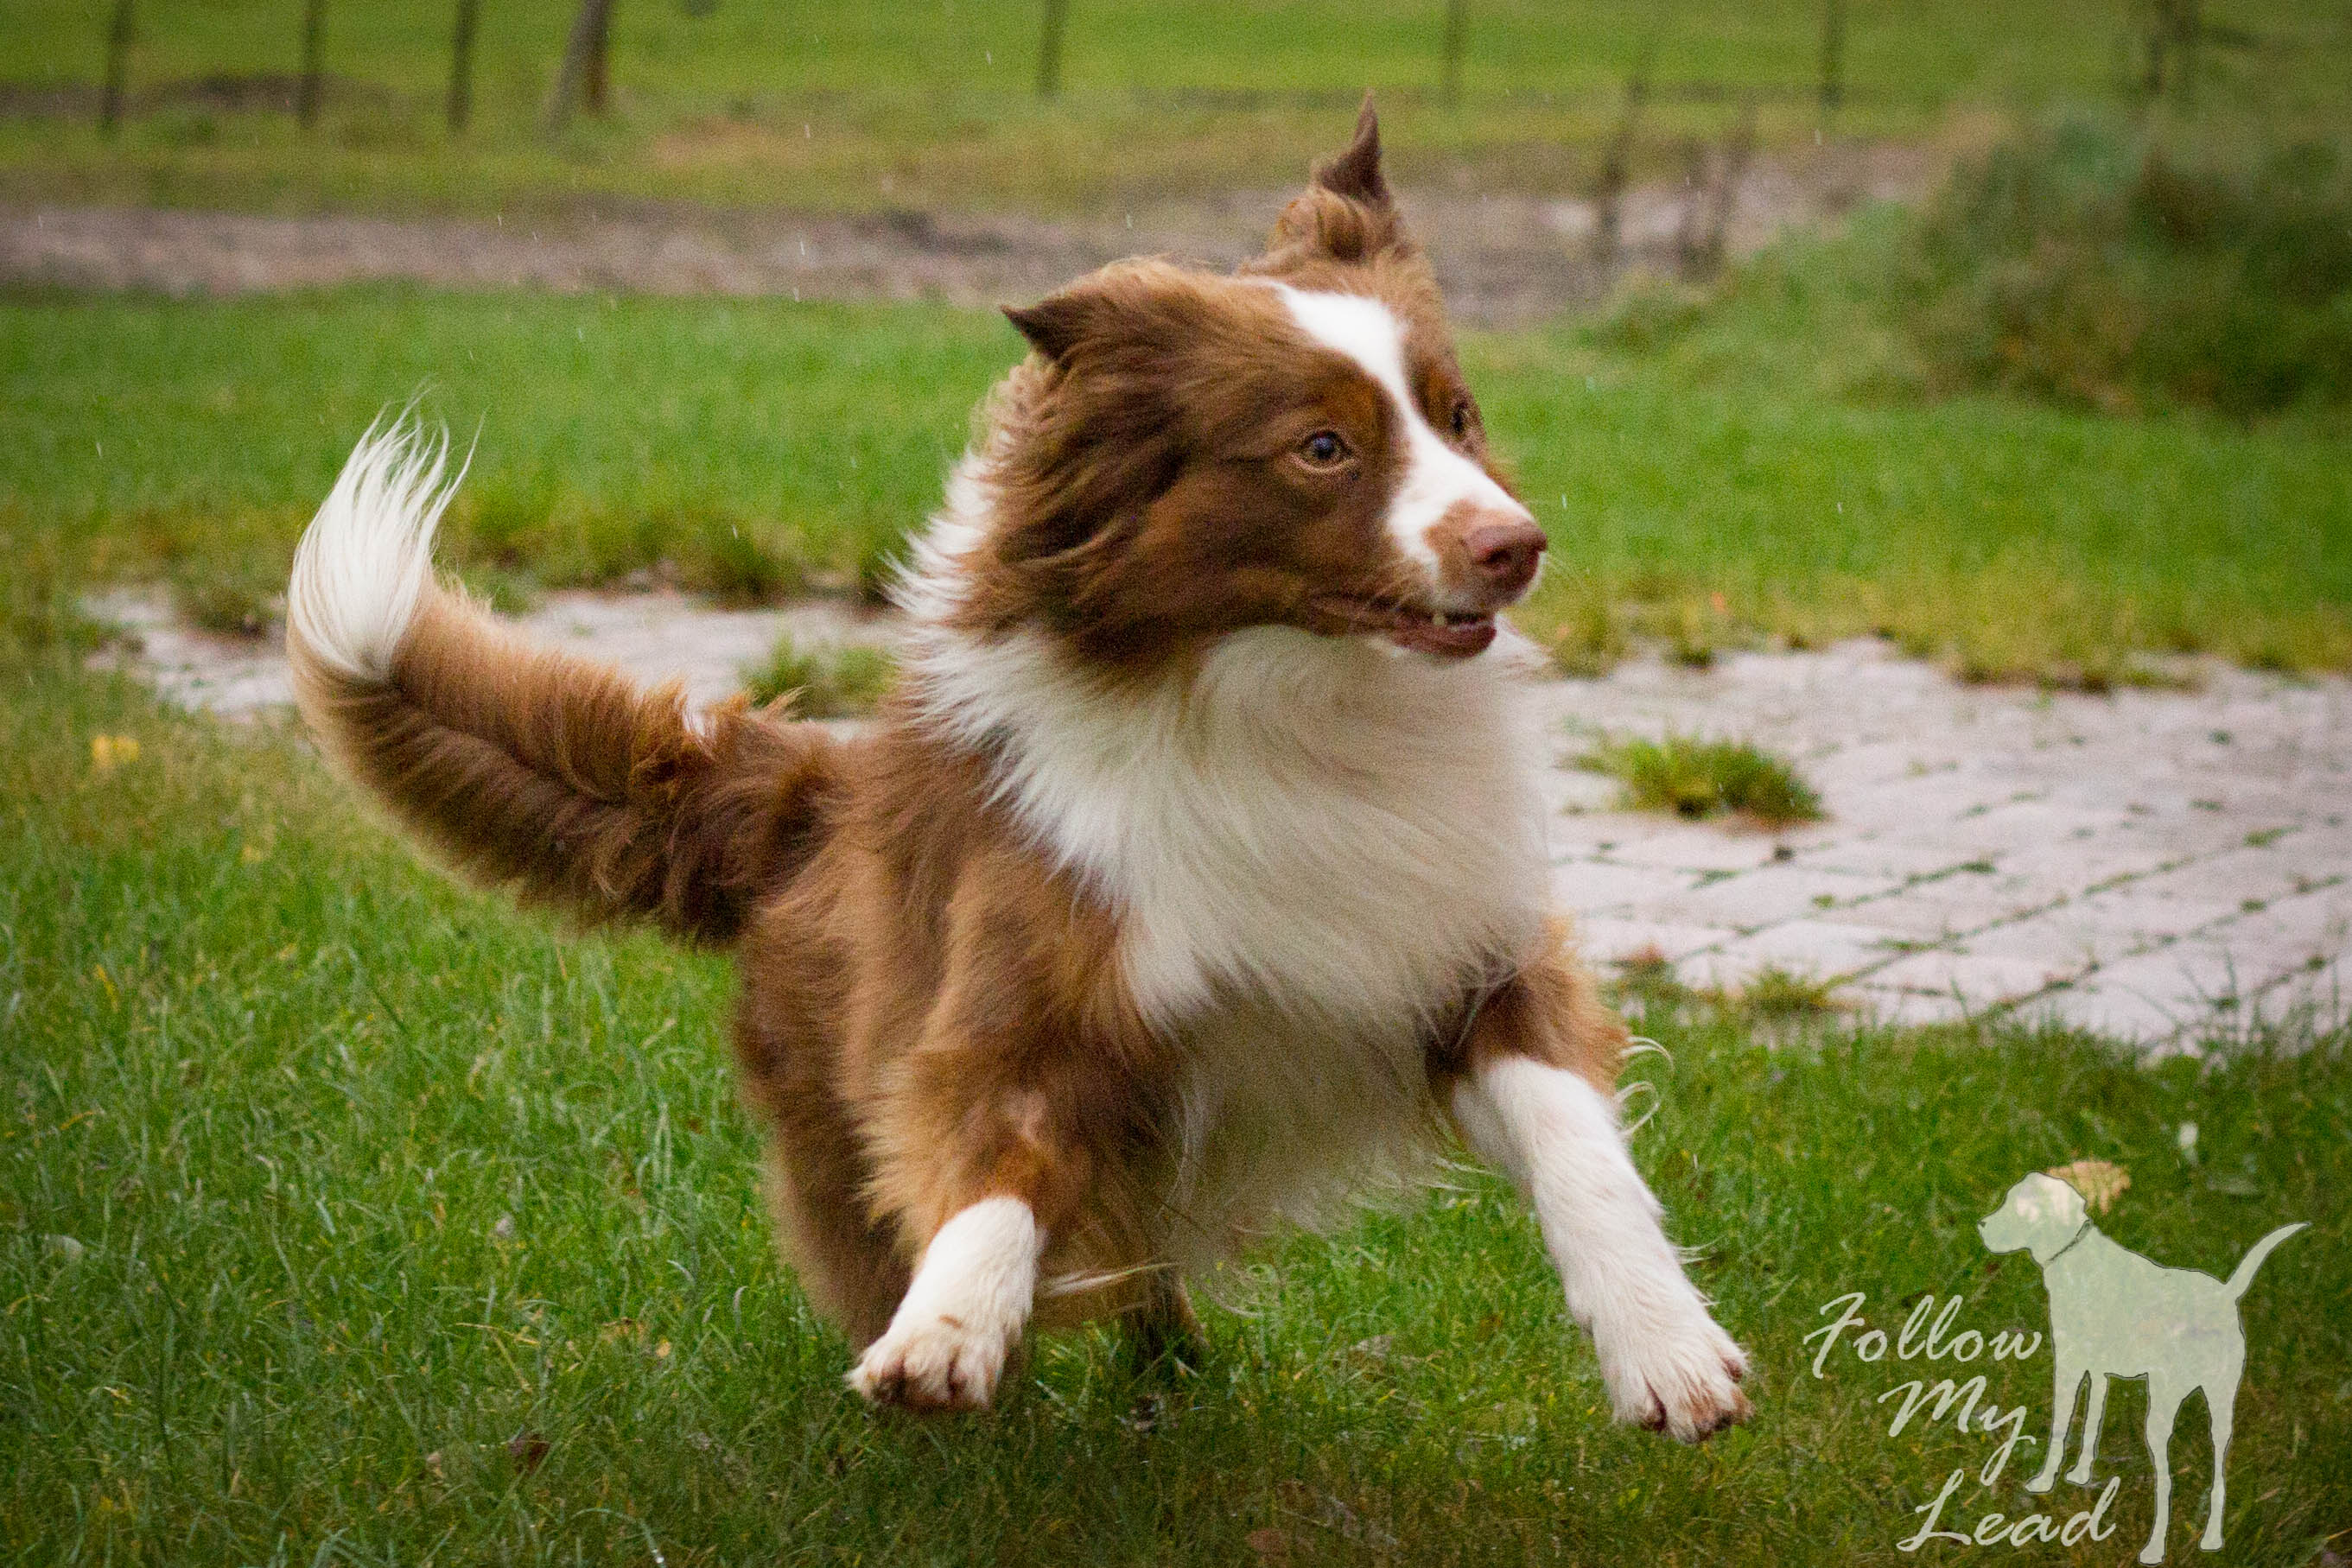 action shot of Miniature American Shepherd dog